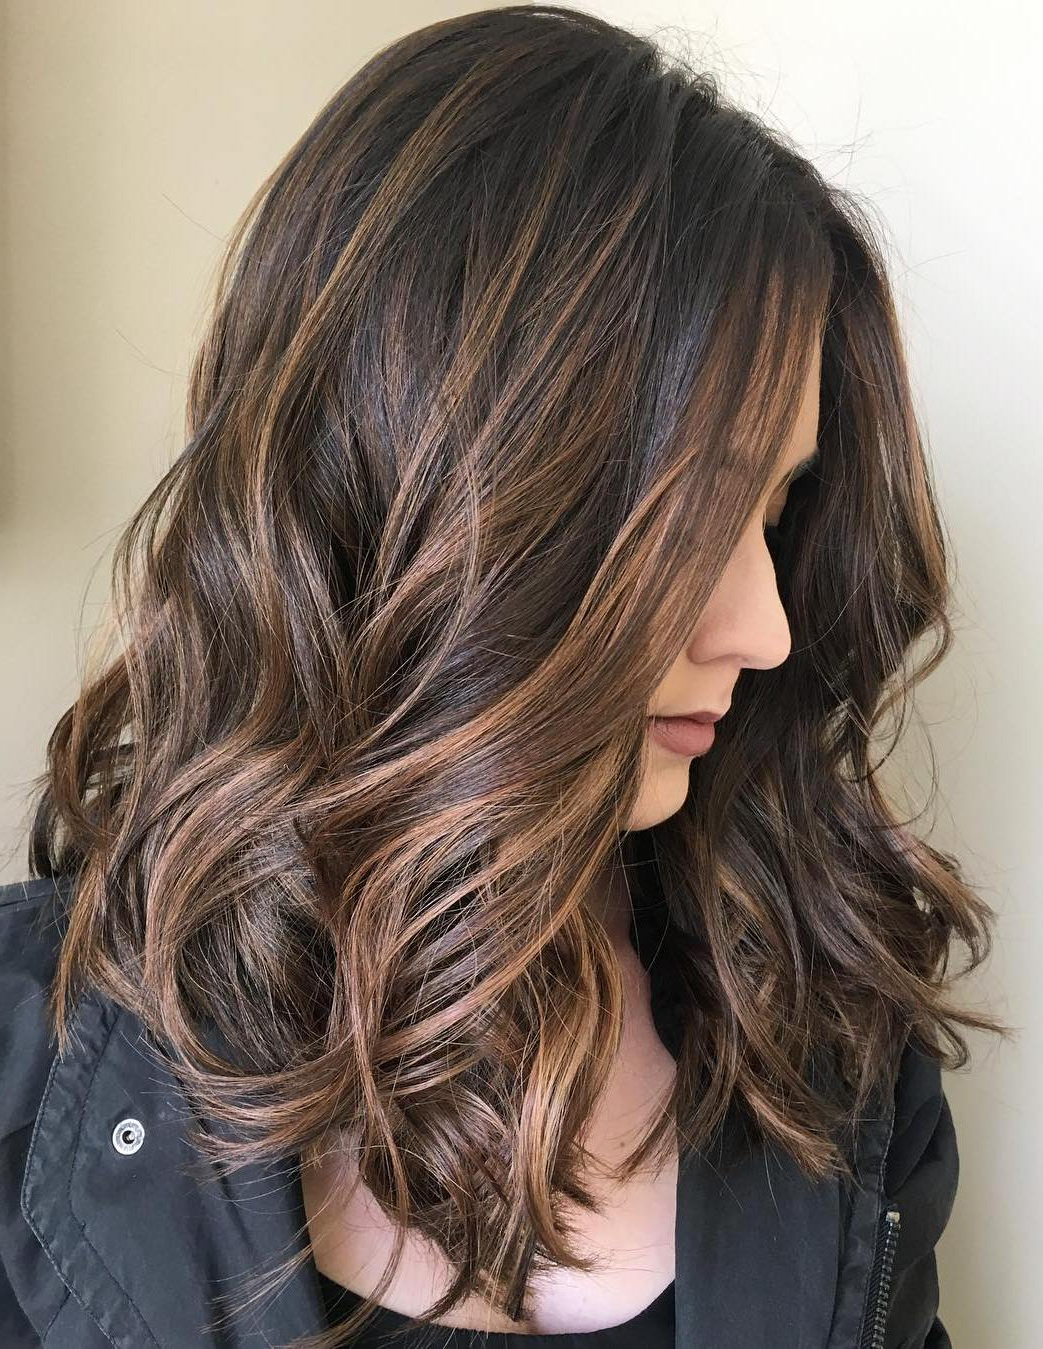 70 Balayage Hair Color Ideas With Blonde, Brown And Caramel Highlights Inside Latest Long Layered Light Chocolate Brown Haircuts (View 6 of 20)